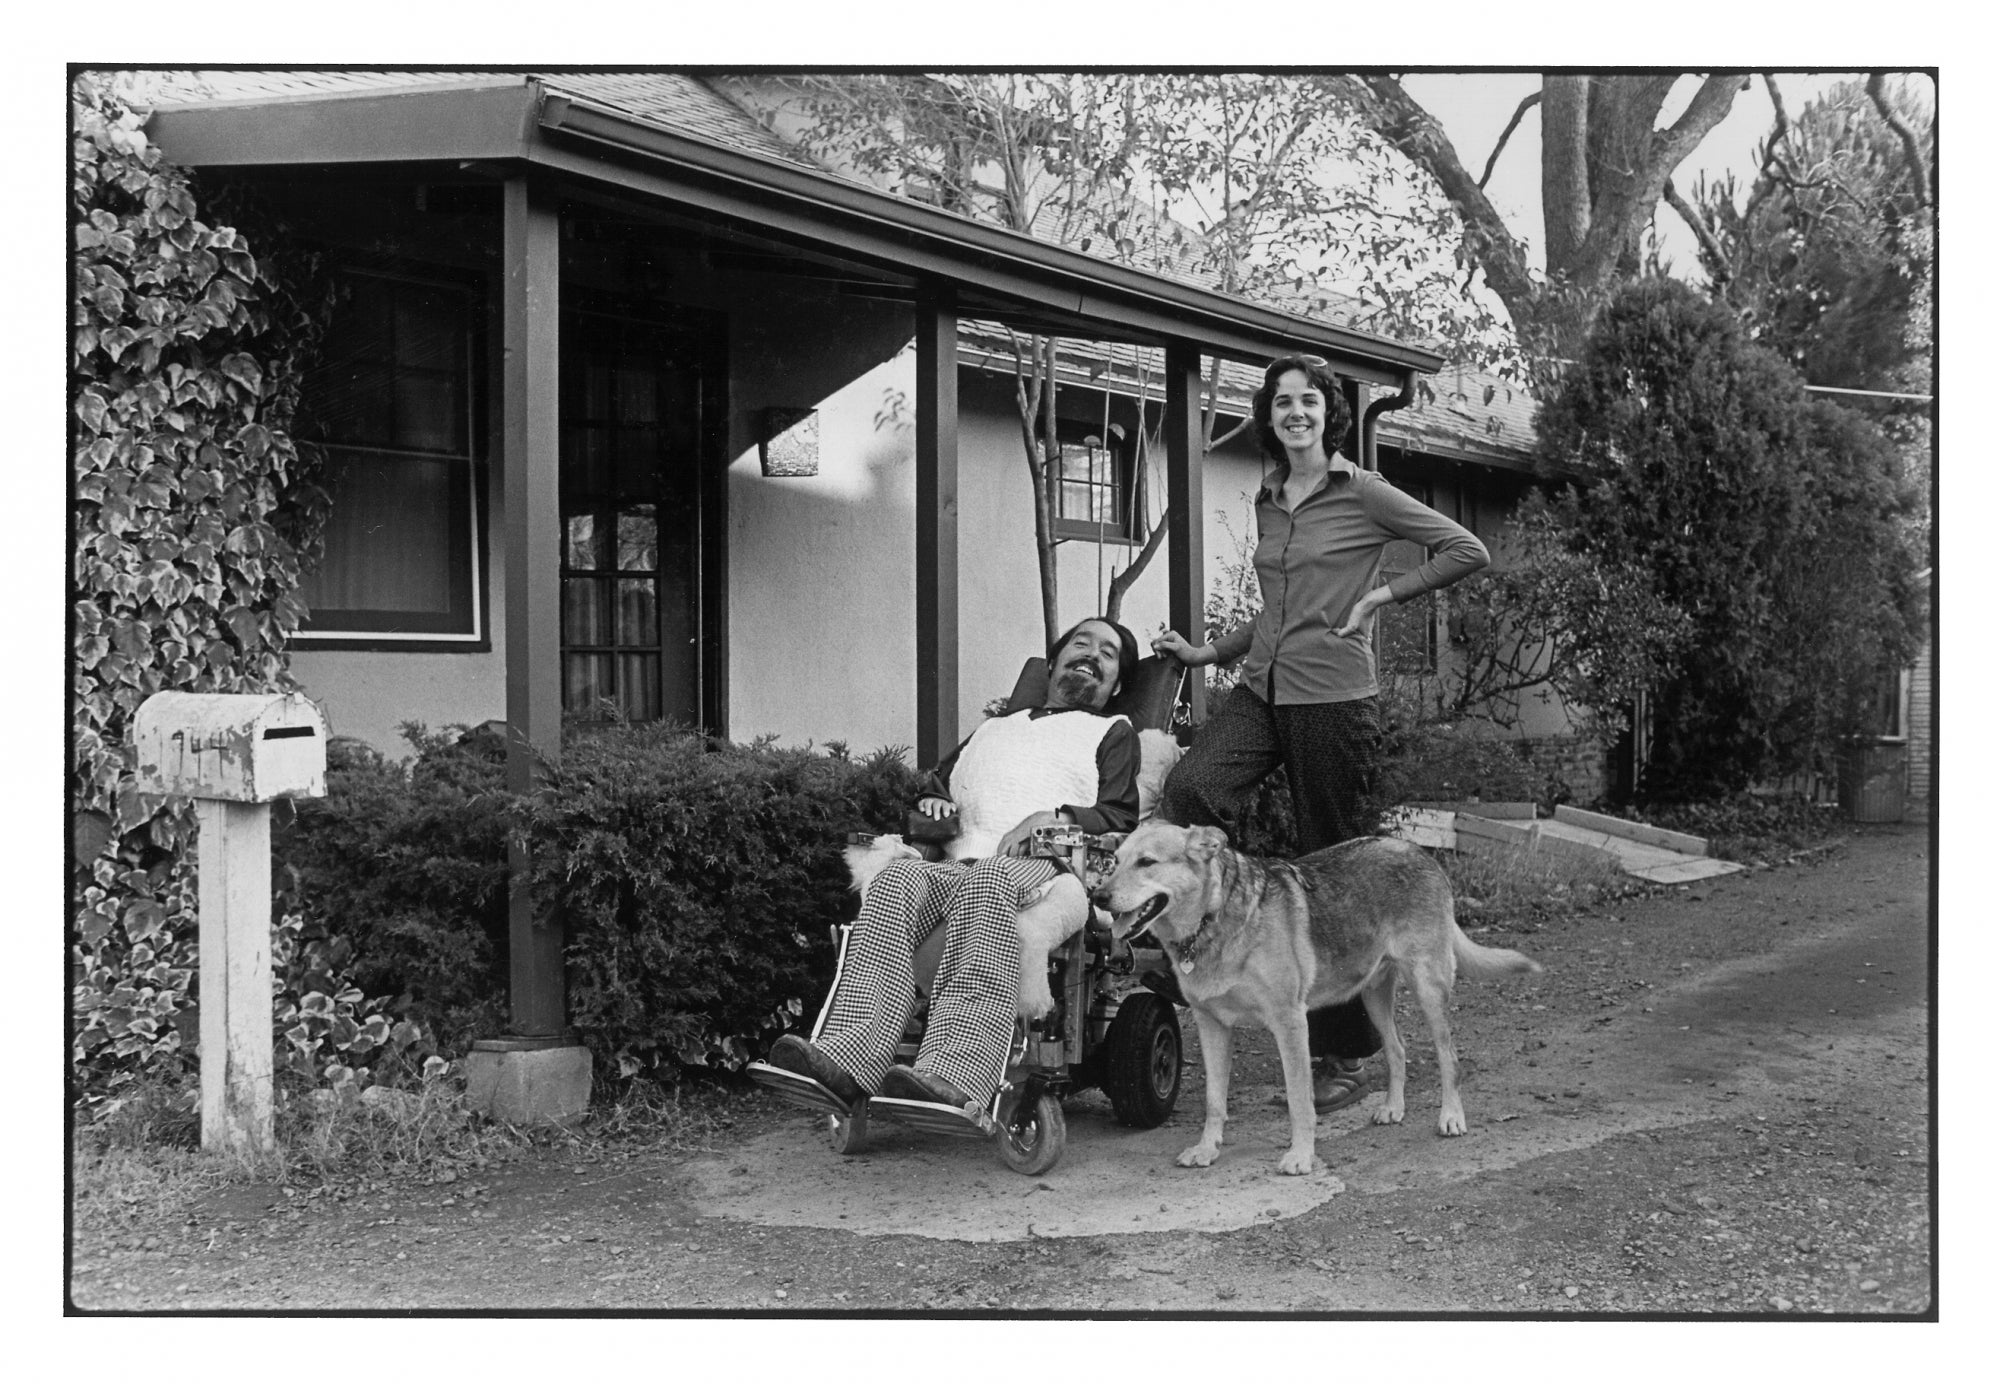 Ed and his wife, Cathy, and their dog Tremor outside their home in Sacramento.